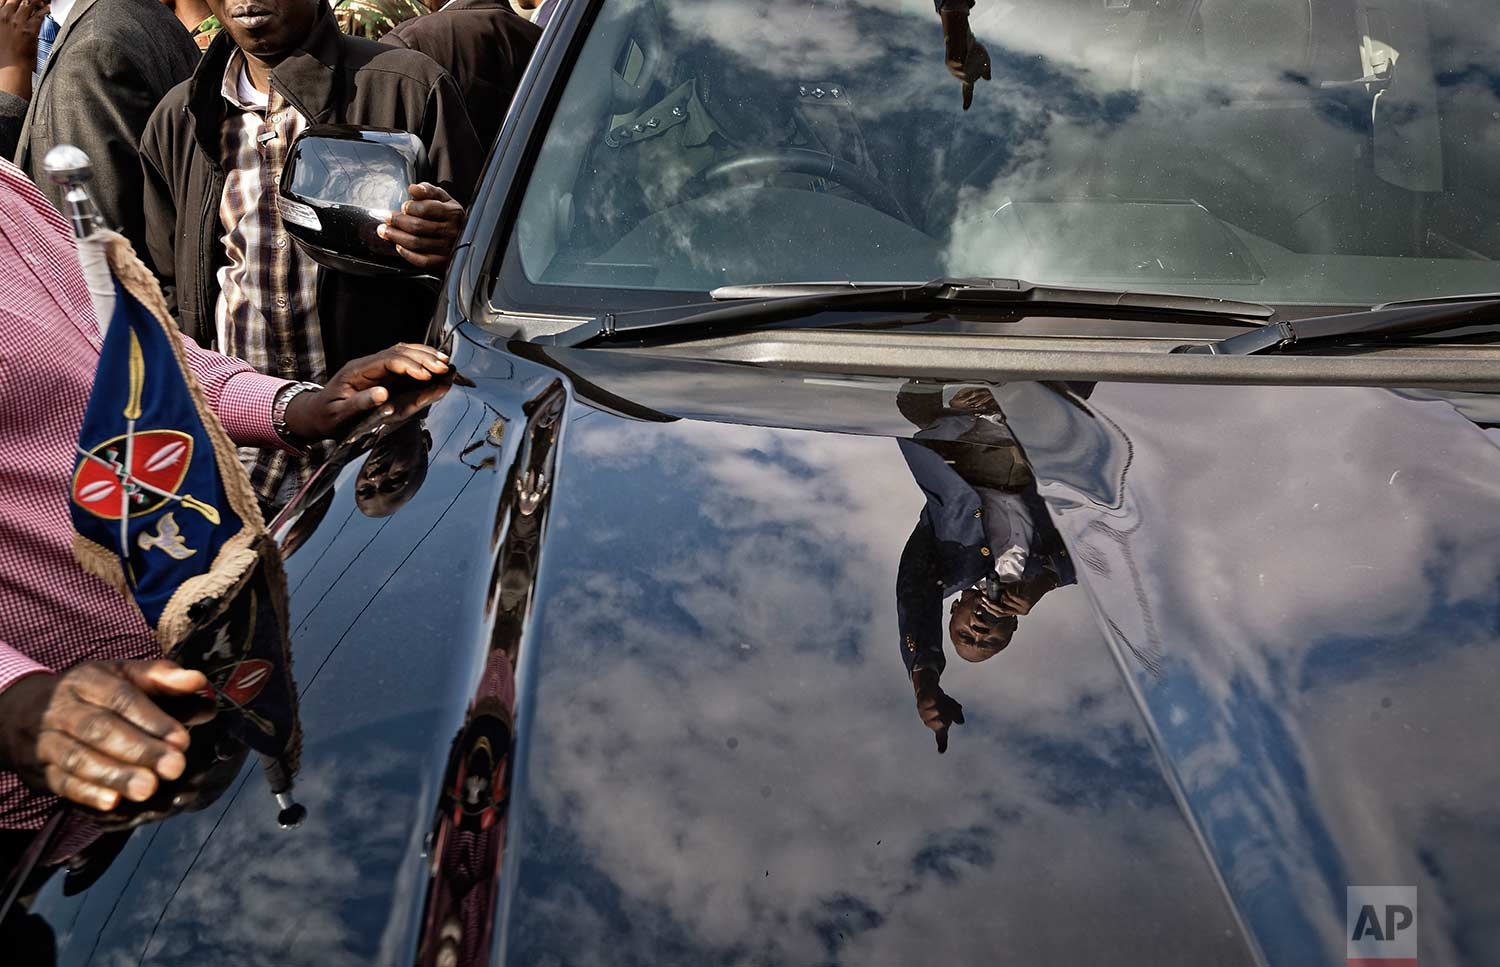 "Kenya's President Uhuru Kenyatta, seen reflected in the hood of a presidential vehicle on which he is standing, addresses supporters on a street in Ongata Rongai, on the outskirts of Nairobi, Kenya Tuesday, Sept. 5, 2017. Kenya faces an Oct. 17 vote after the Supreme Court nullified Kenyatta's re-election, but opposition leader Raila Odinga said Tuesday he does not accept the date, demanding reforms to the electoral commission and other ""legal and constitutional guarantees."" (AP Photo/Ben Curtis)"